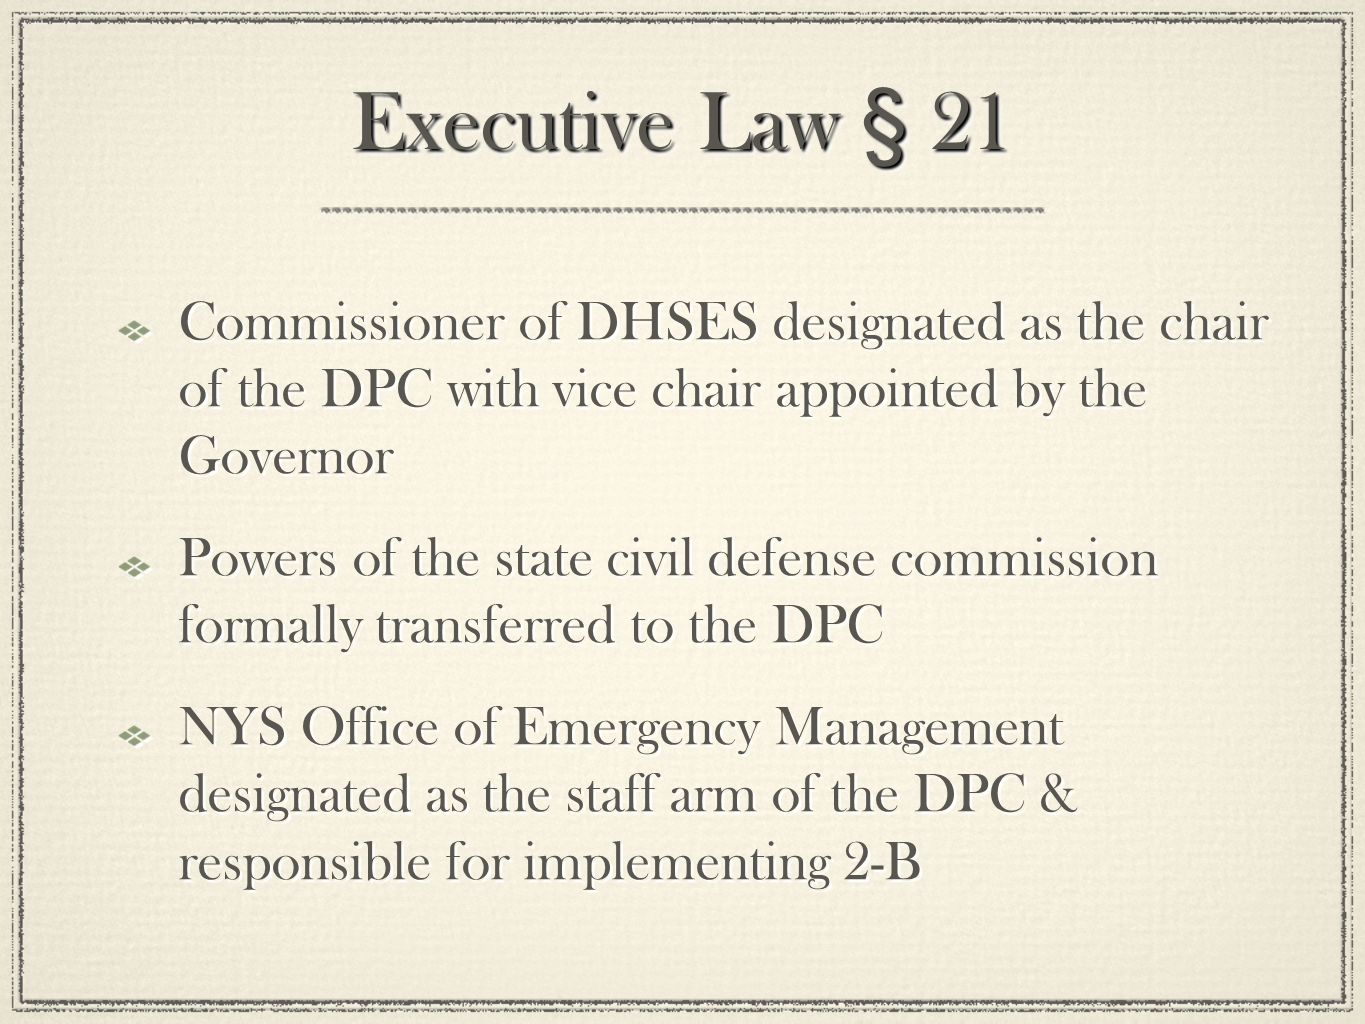 Executive Law § 21 Commissioner of DHSES designated as the chair of the DPC with vice chair appointed by the Governor Powers of the state civil defense commission formally transferred to the DPC NYS Office of Emergency Management designated as the staff arm of the DPC & responsible for implementing 2-B Commissioner of DHSES designated as the chair of the DPC with vice chair appointed by the Governor Powers of the state civil defense commission formally transferred to the DPC NYS Office of Emergency Management designated as the staff arm of the DPC & responsible for implementing 2-B